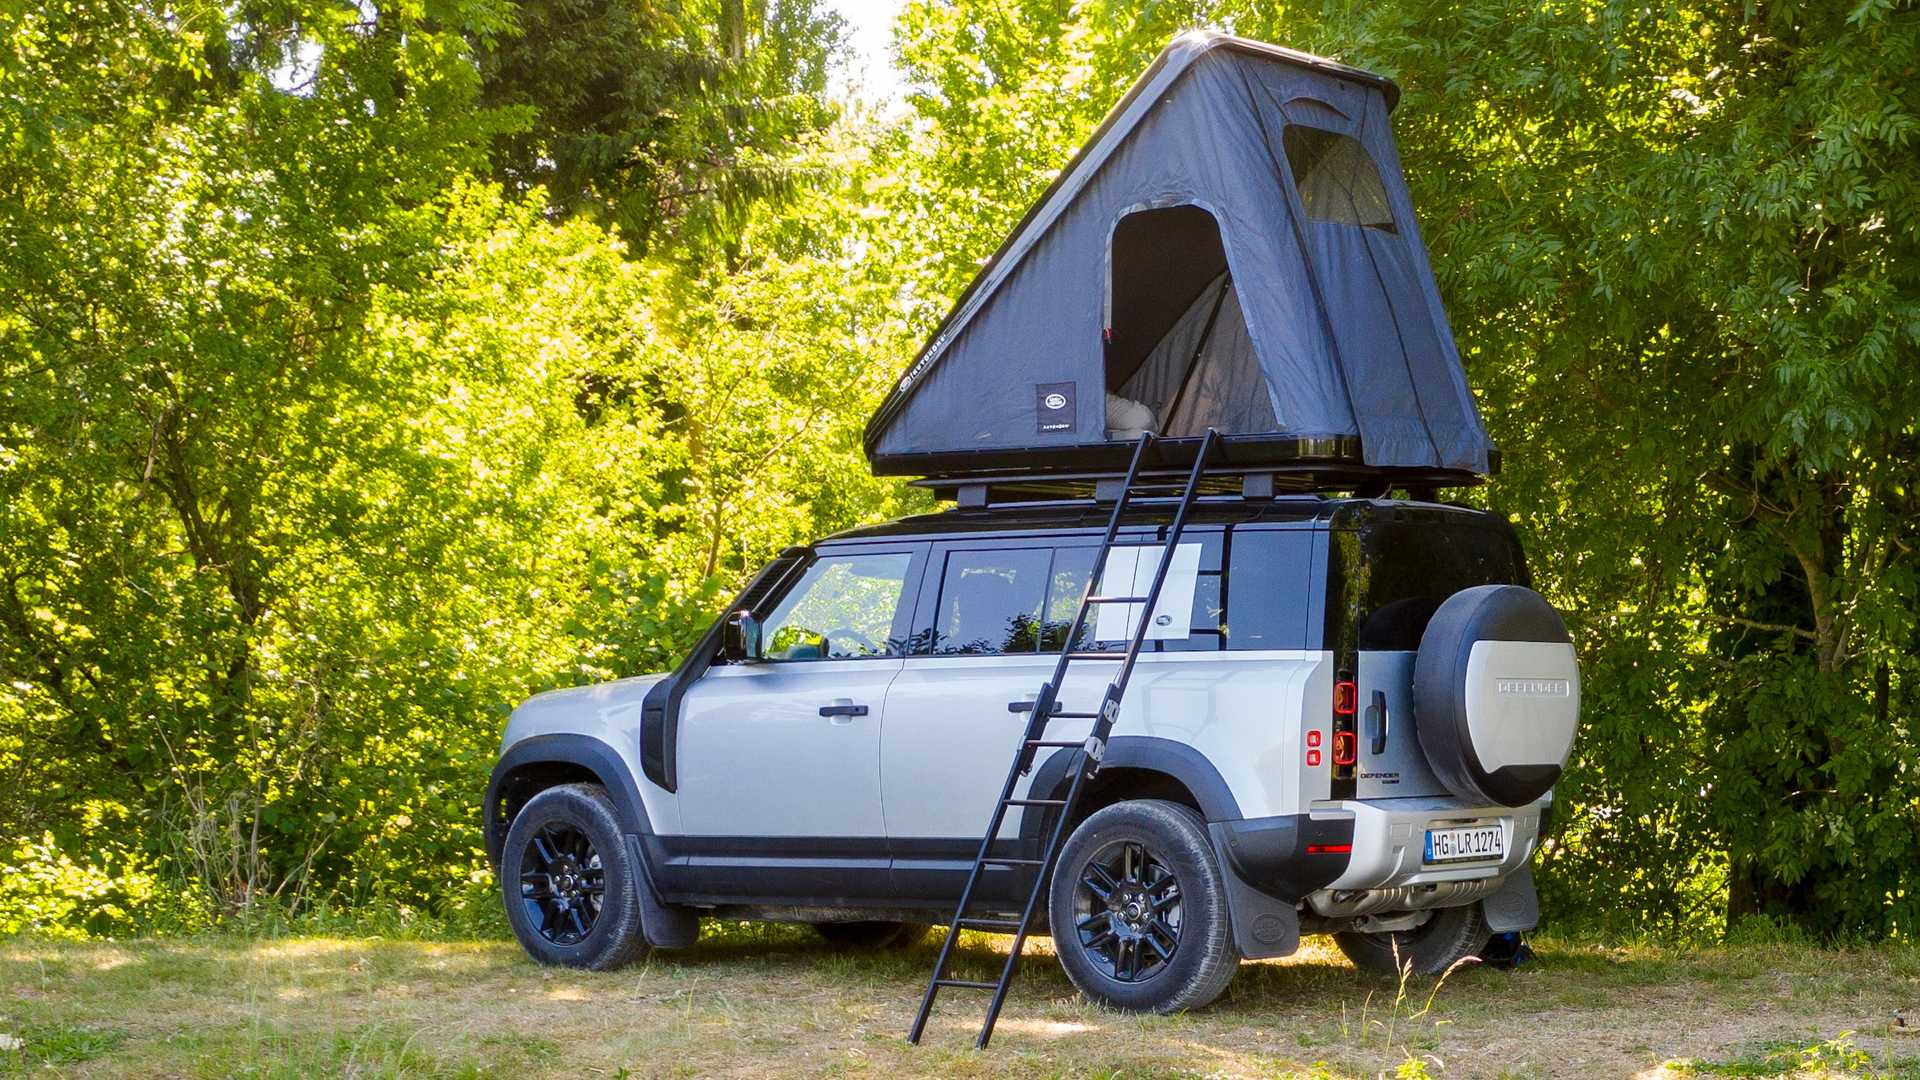 2020 Land Rover Defender Offers Rooftop Naps With Tent Option